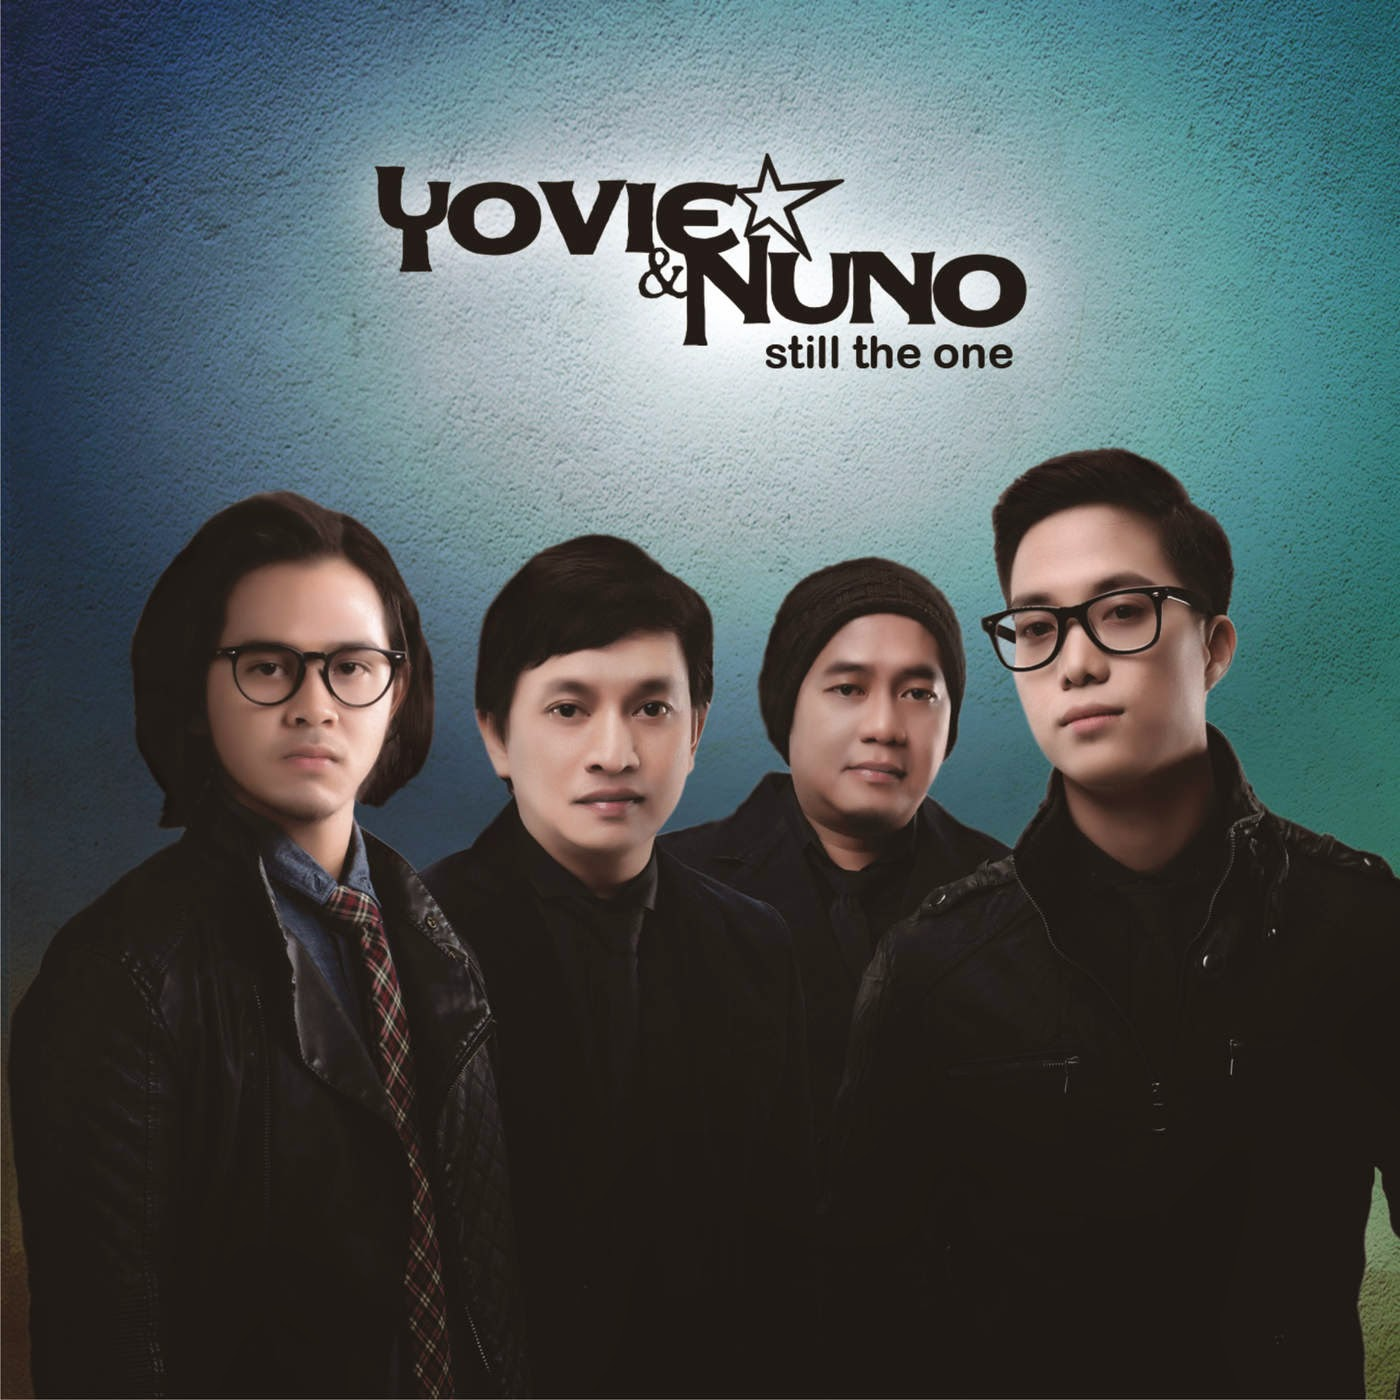 Yovie & Nuno - Tanpa Cinta (from Still the One)